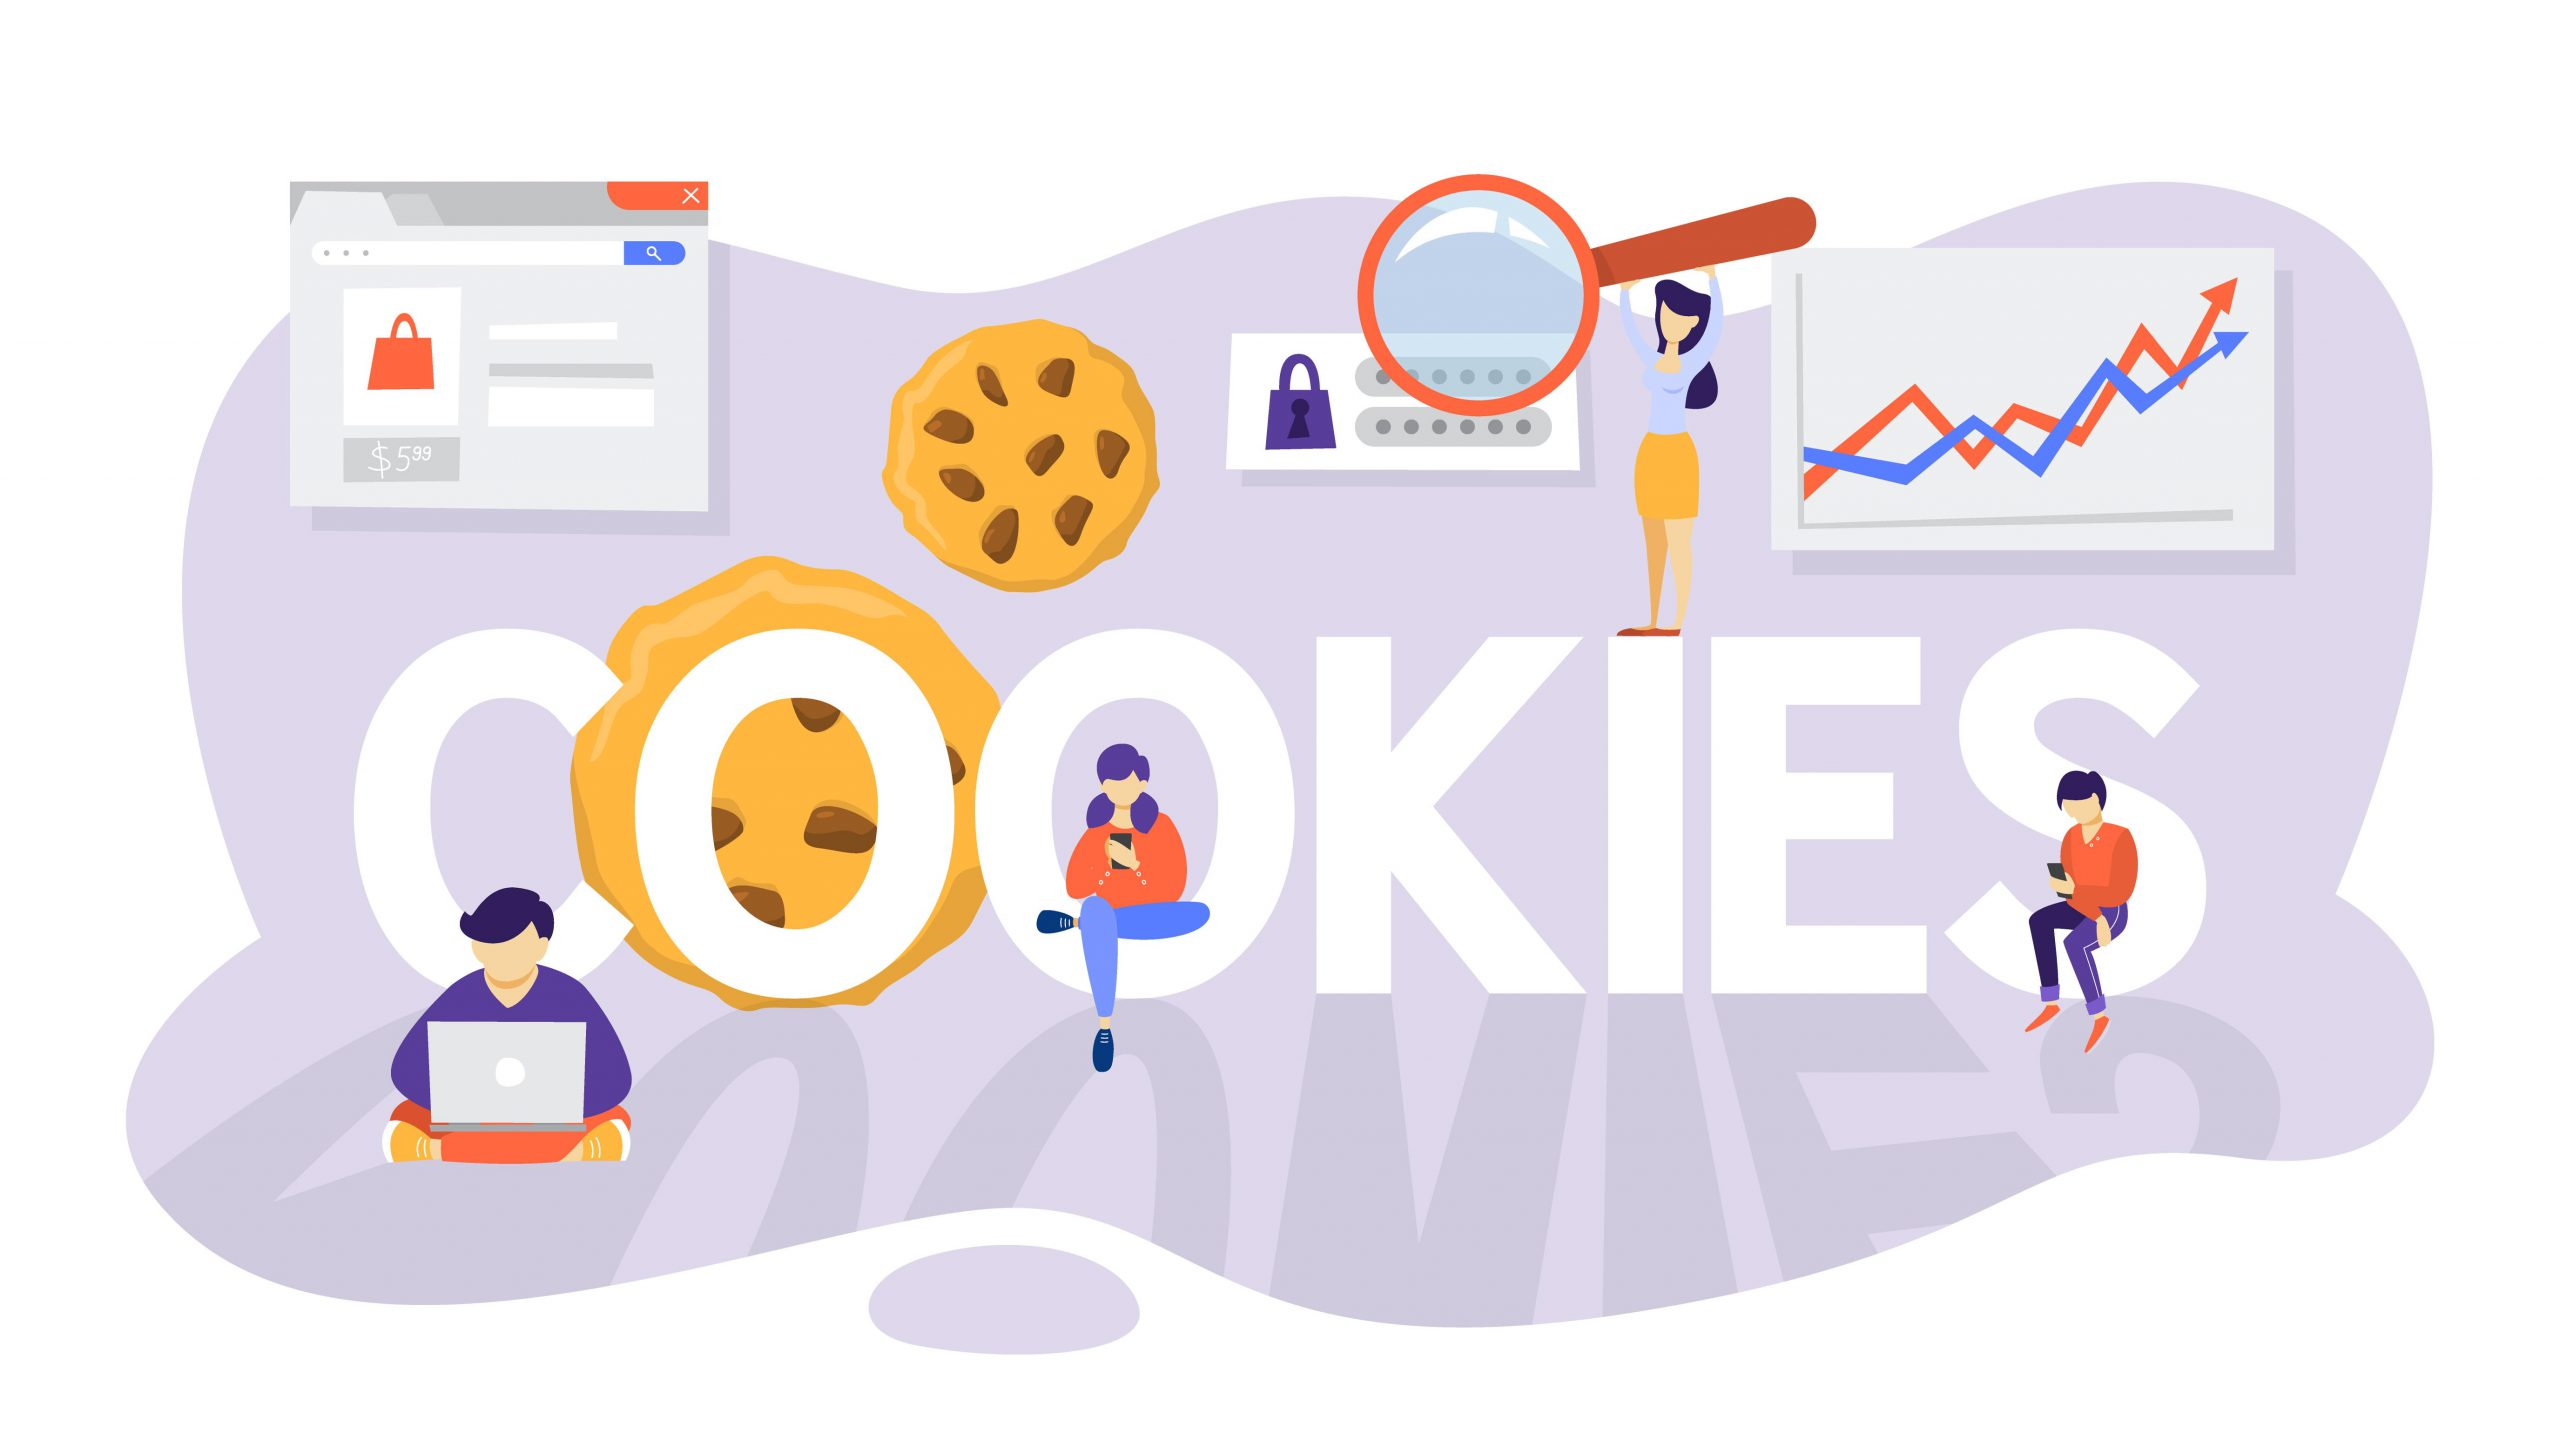 GDPR & Cookie Law